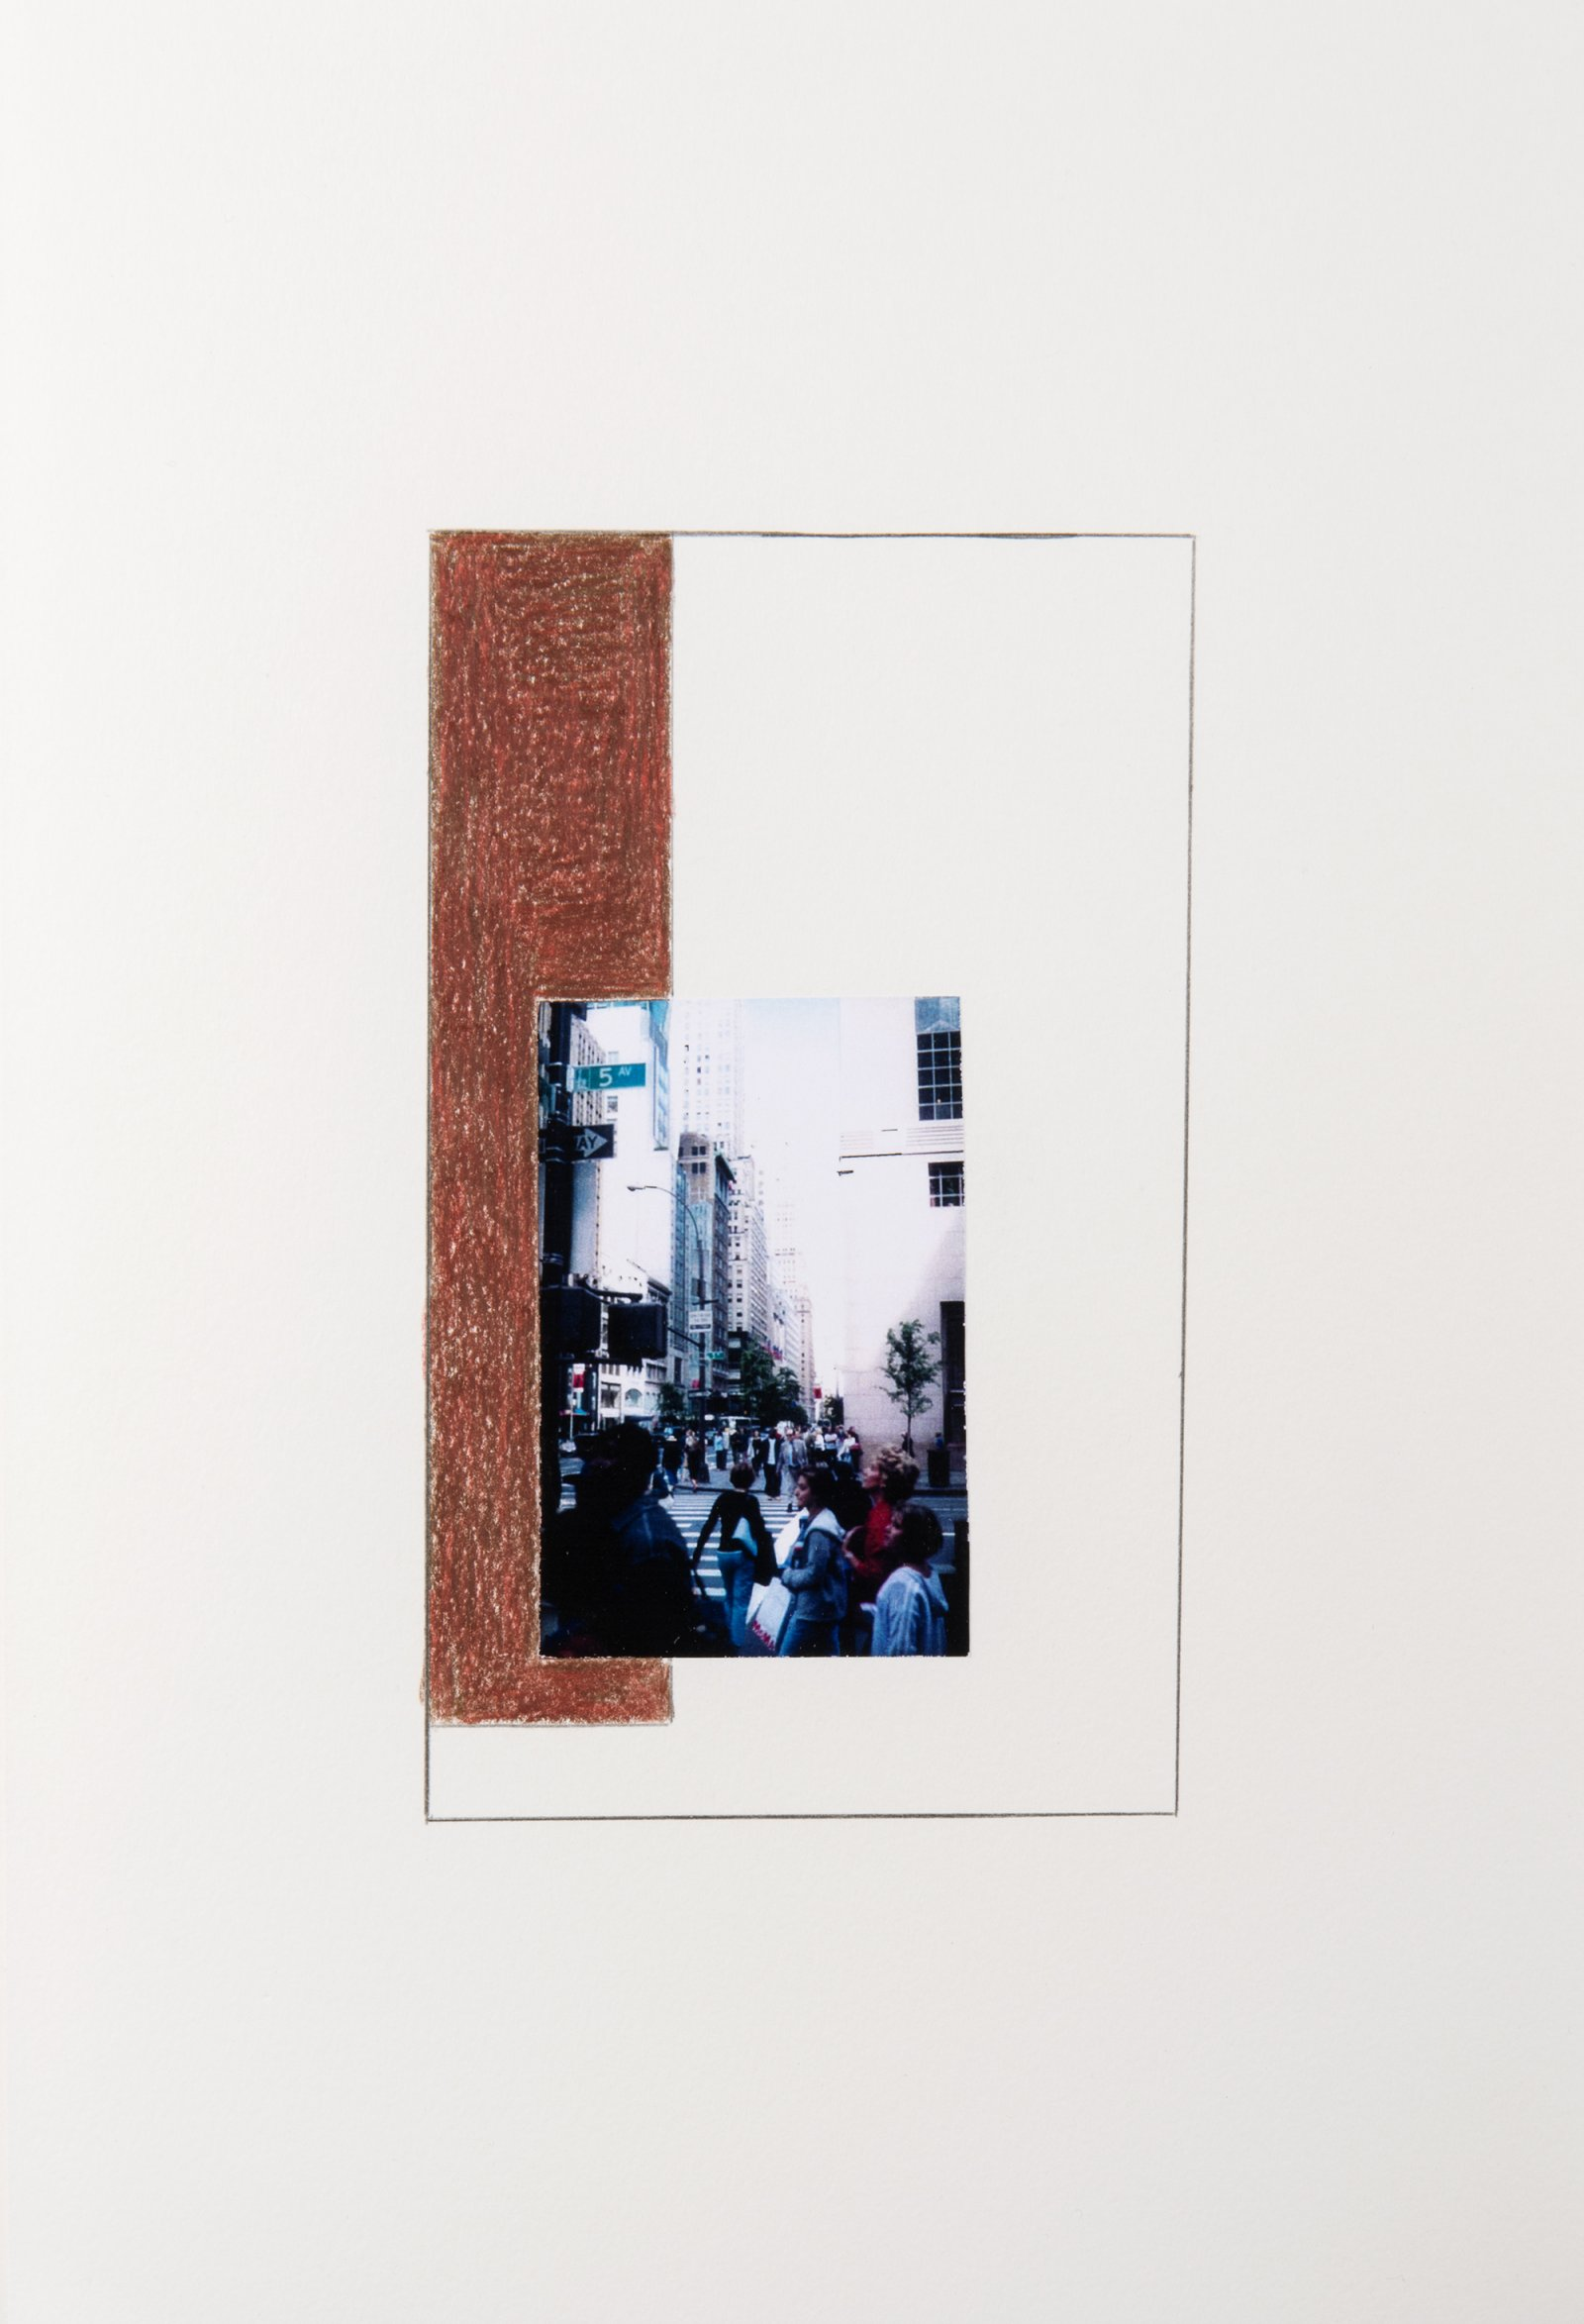 Ian Wallace,New York Series Studies, 2001, photocopy with pencil on paper,11 x 7 in. (28 x 18 cm)